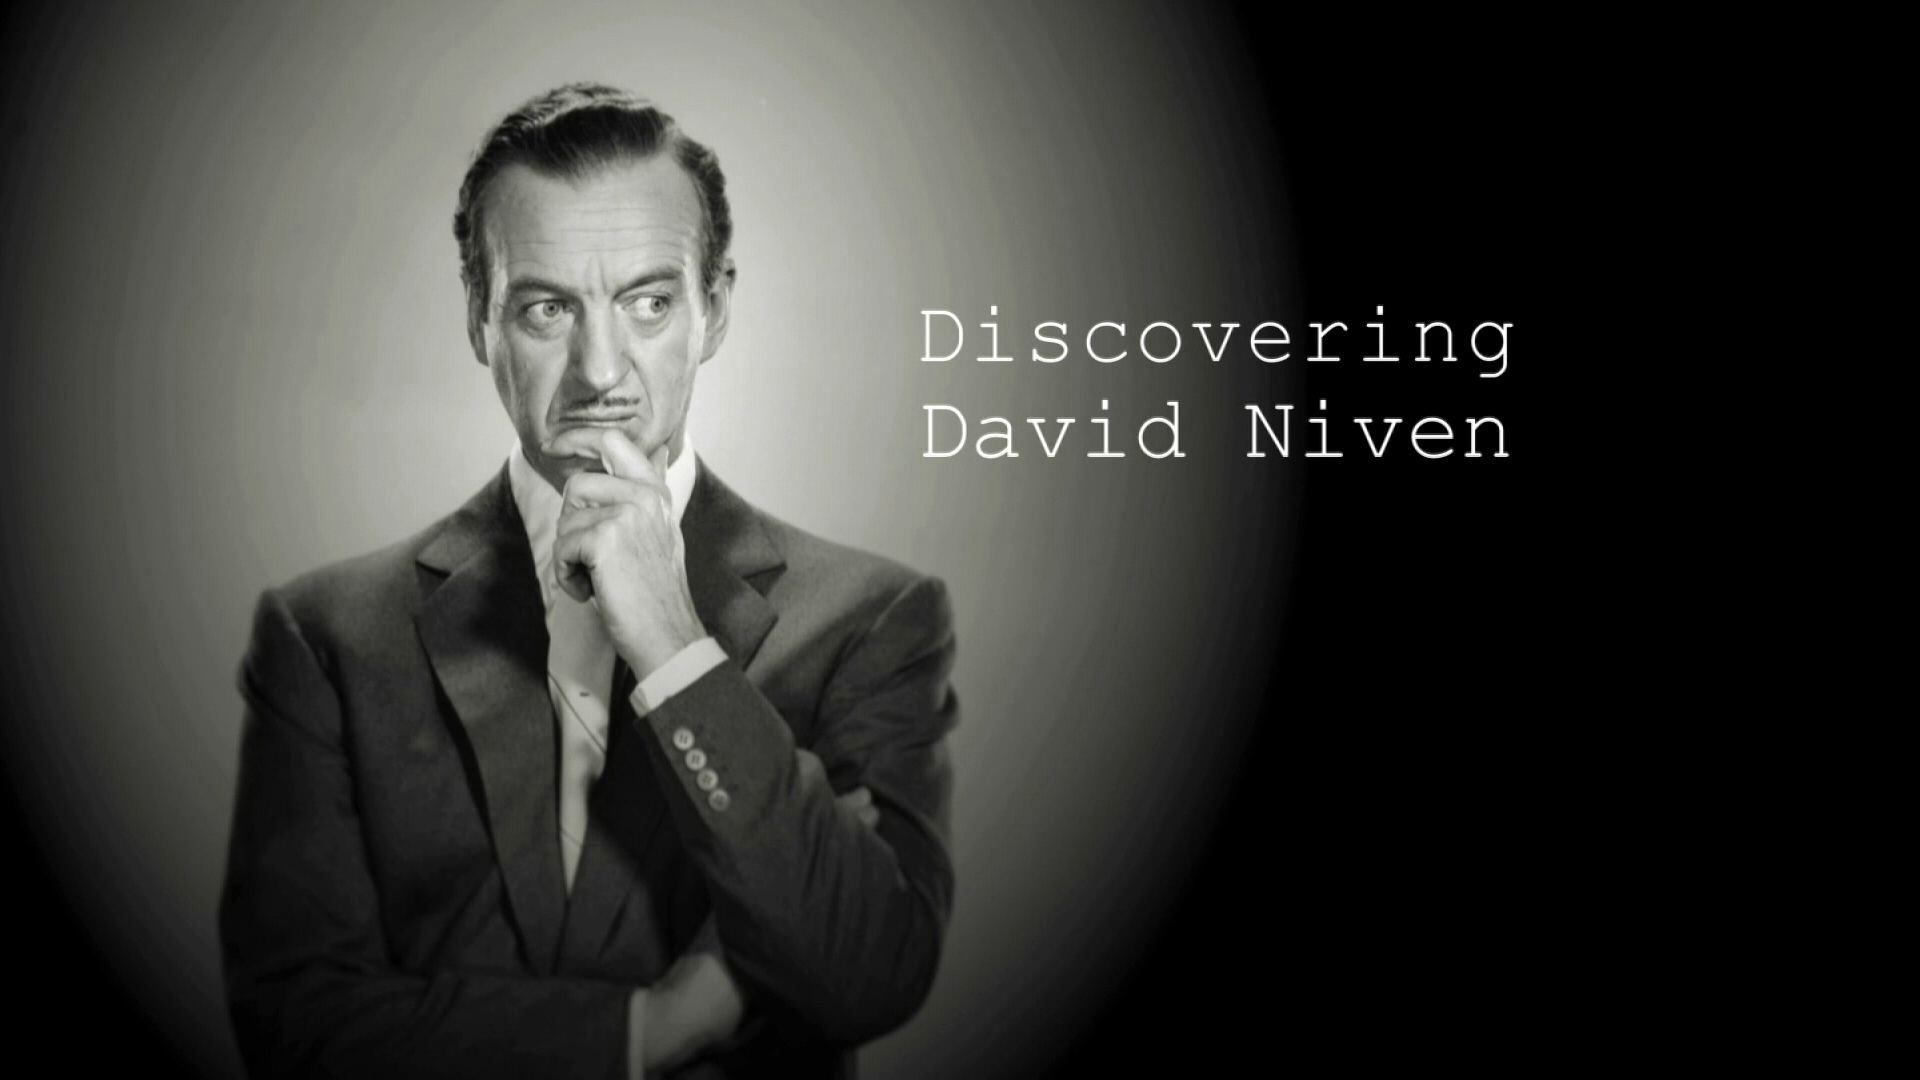 Main title from the 'Discovering: David Niven' episode of Discovering Film, featuring David Niven